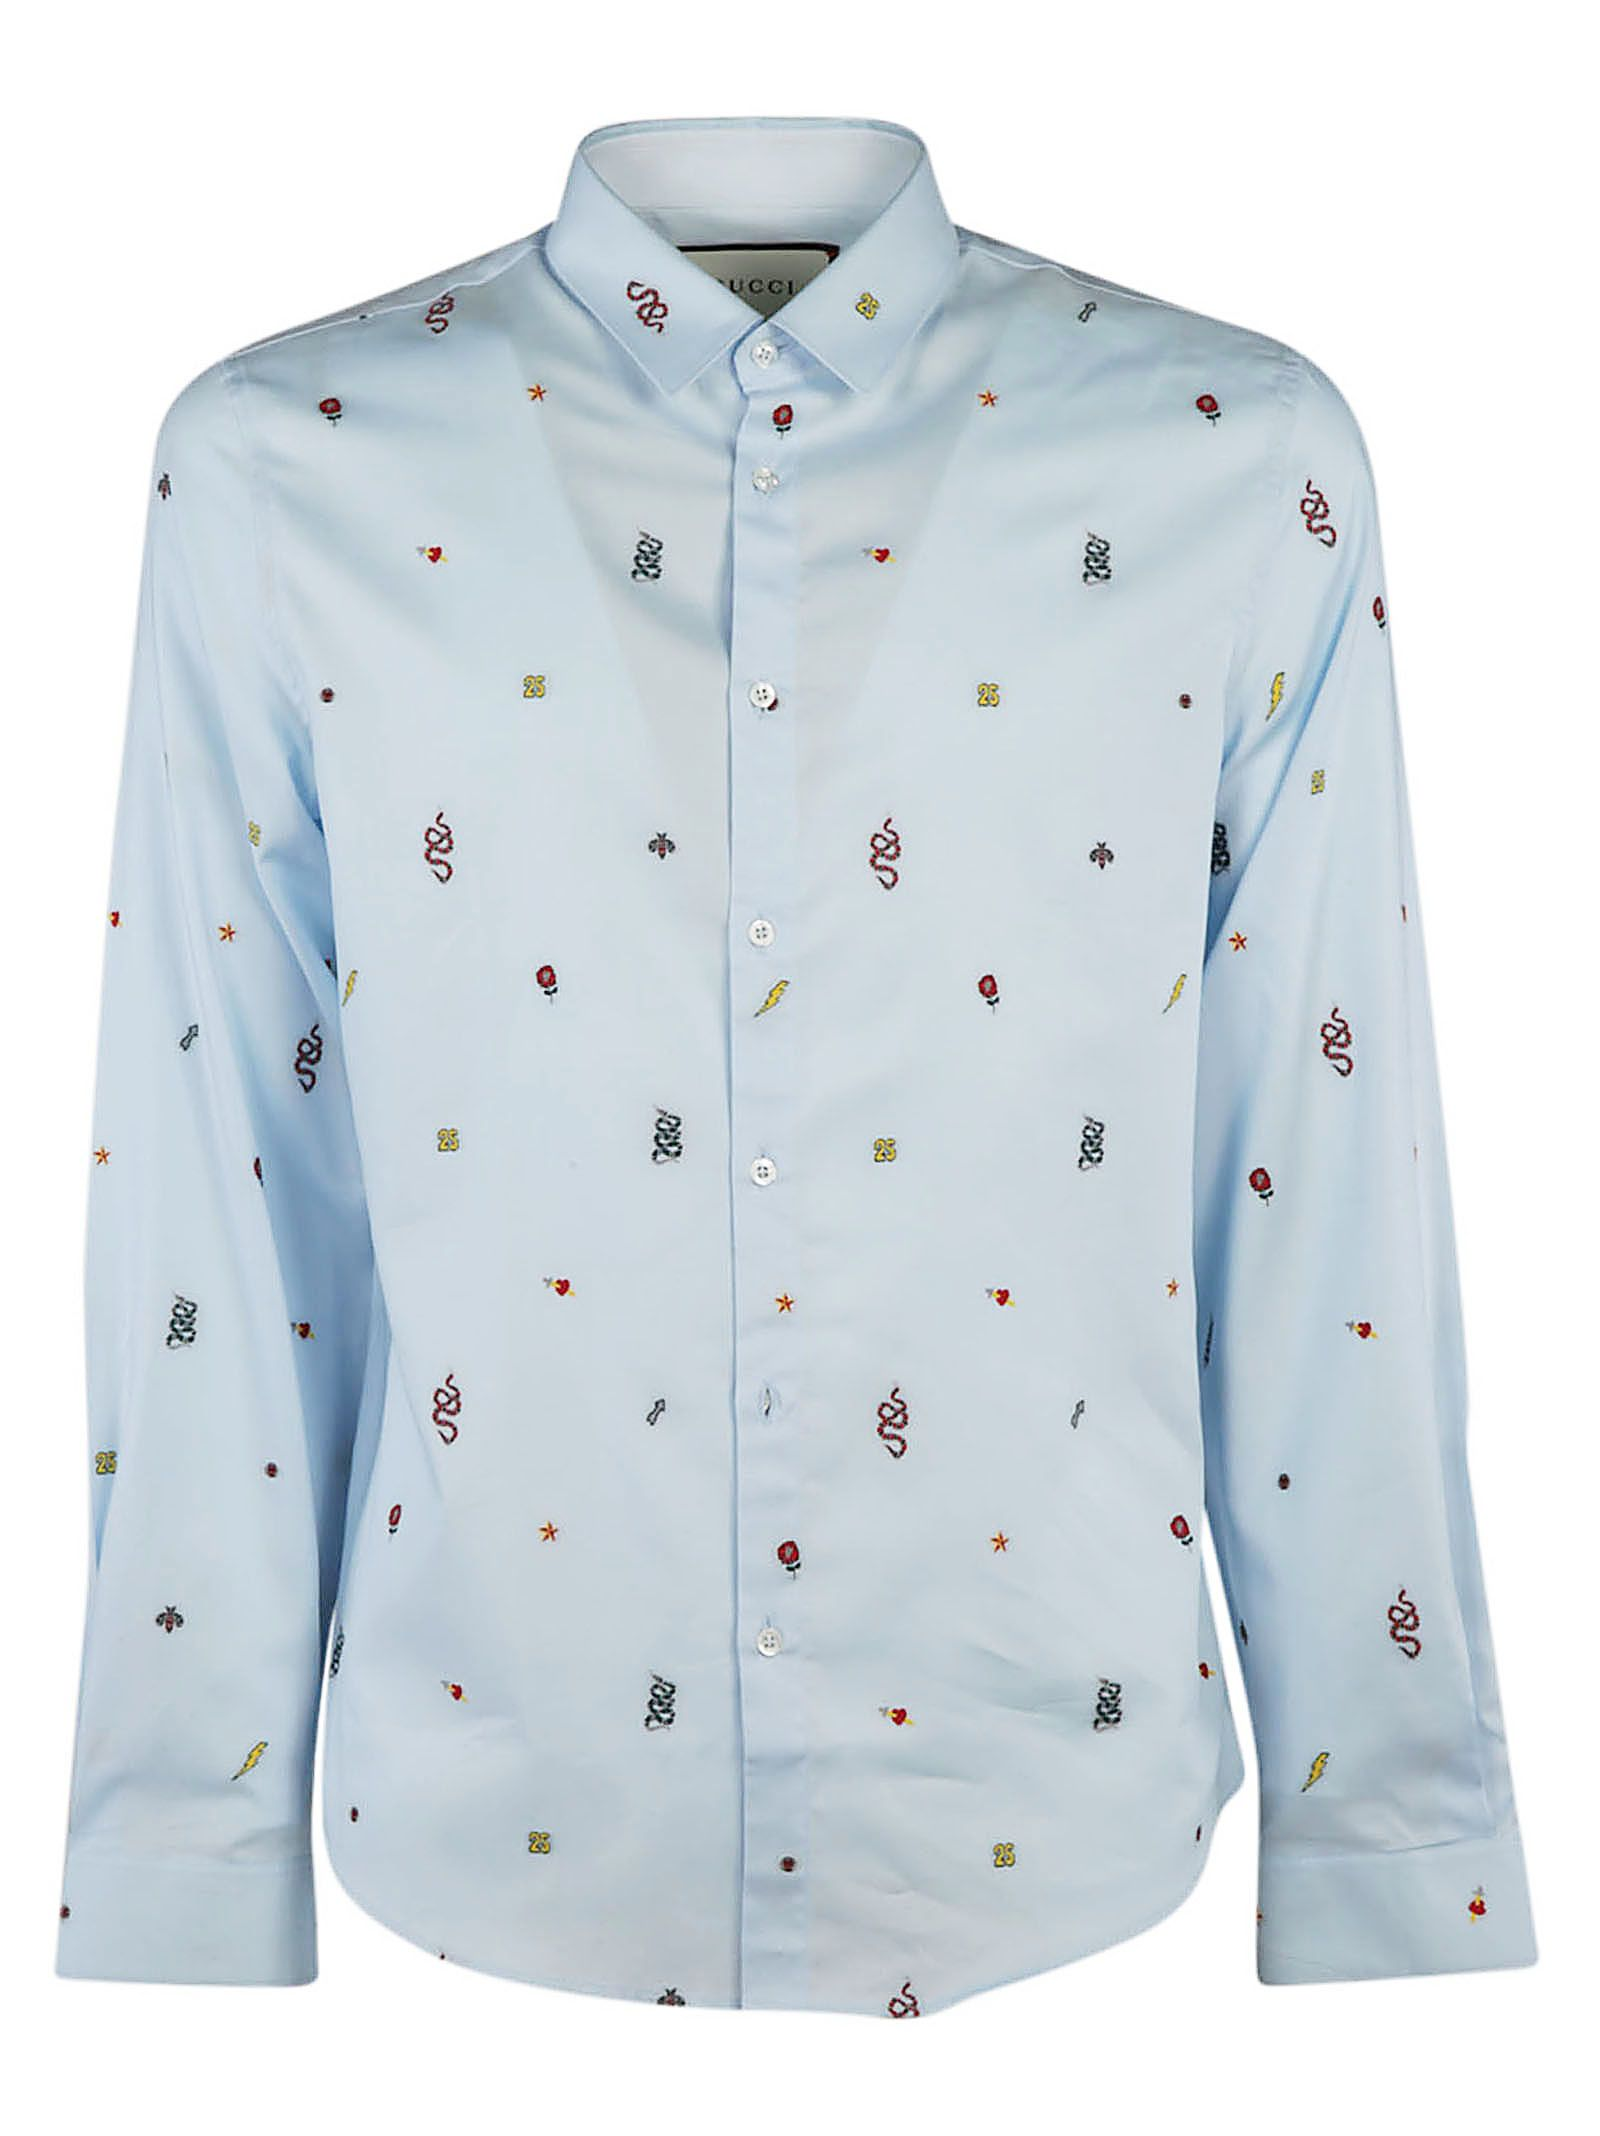 Gucci Symbols Oxford Duke Shirt